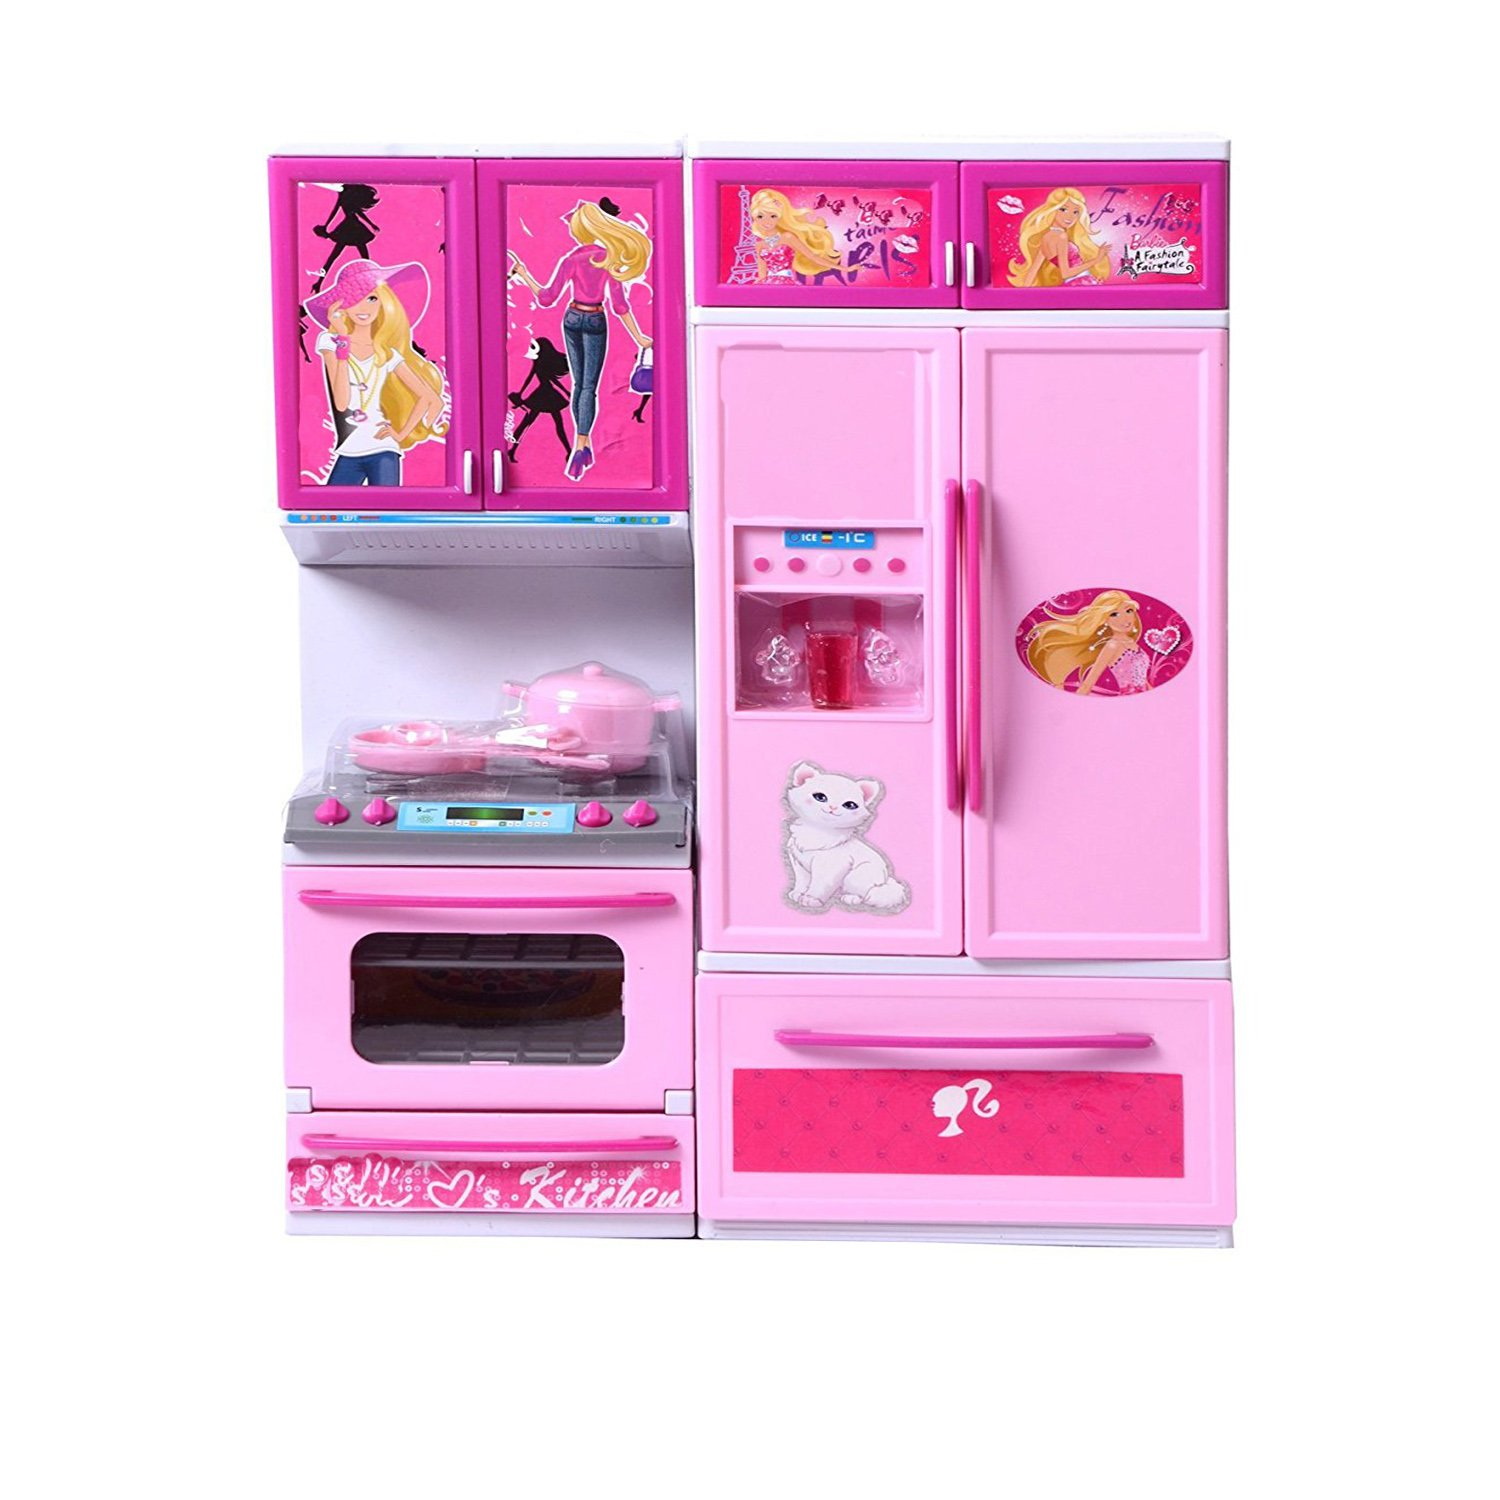 Buy tabu toys world kitchen set for girls online at low prices in india amazon in